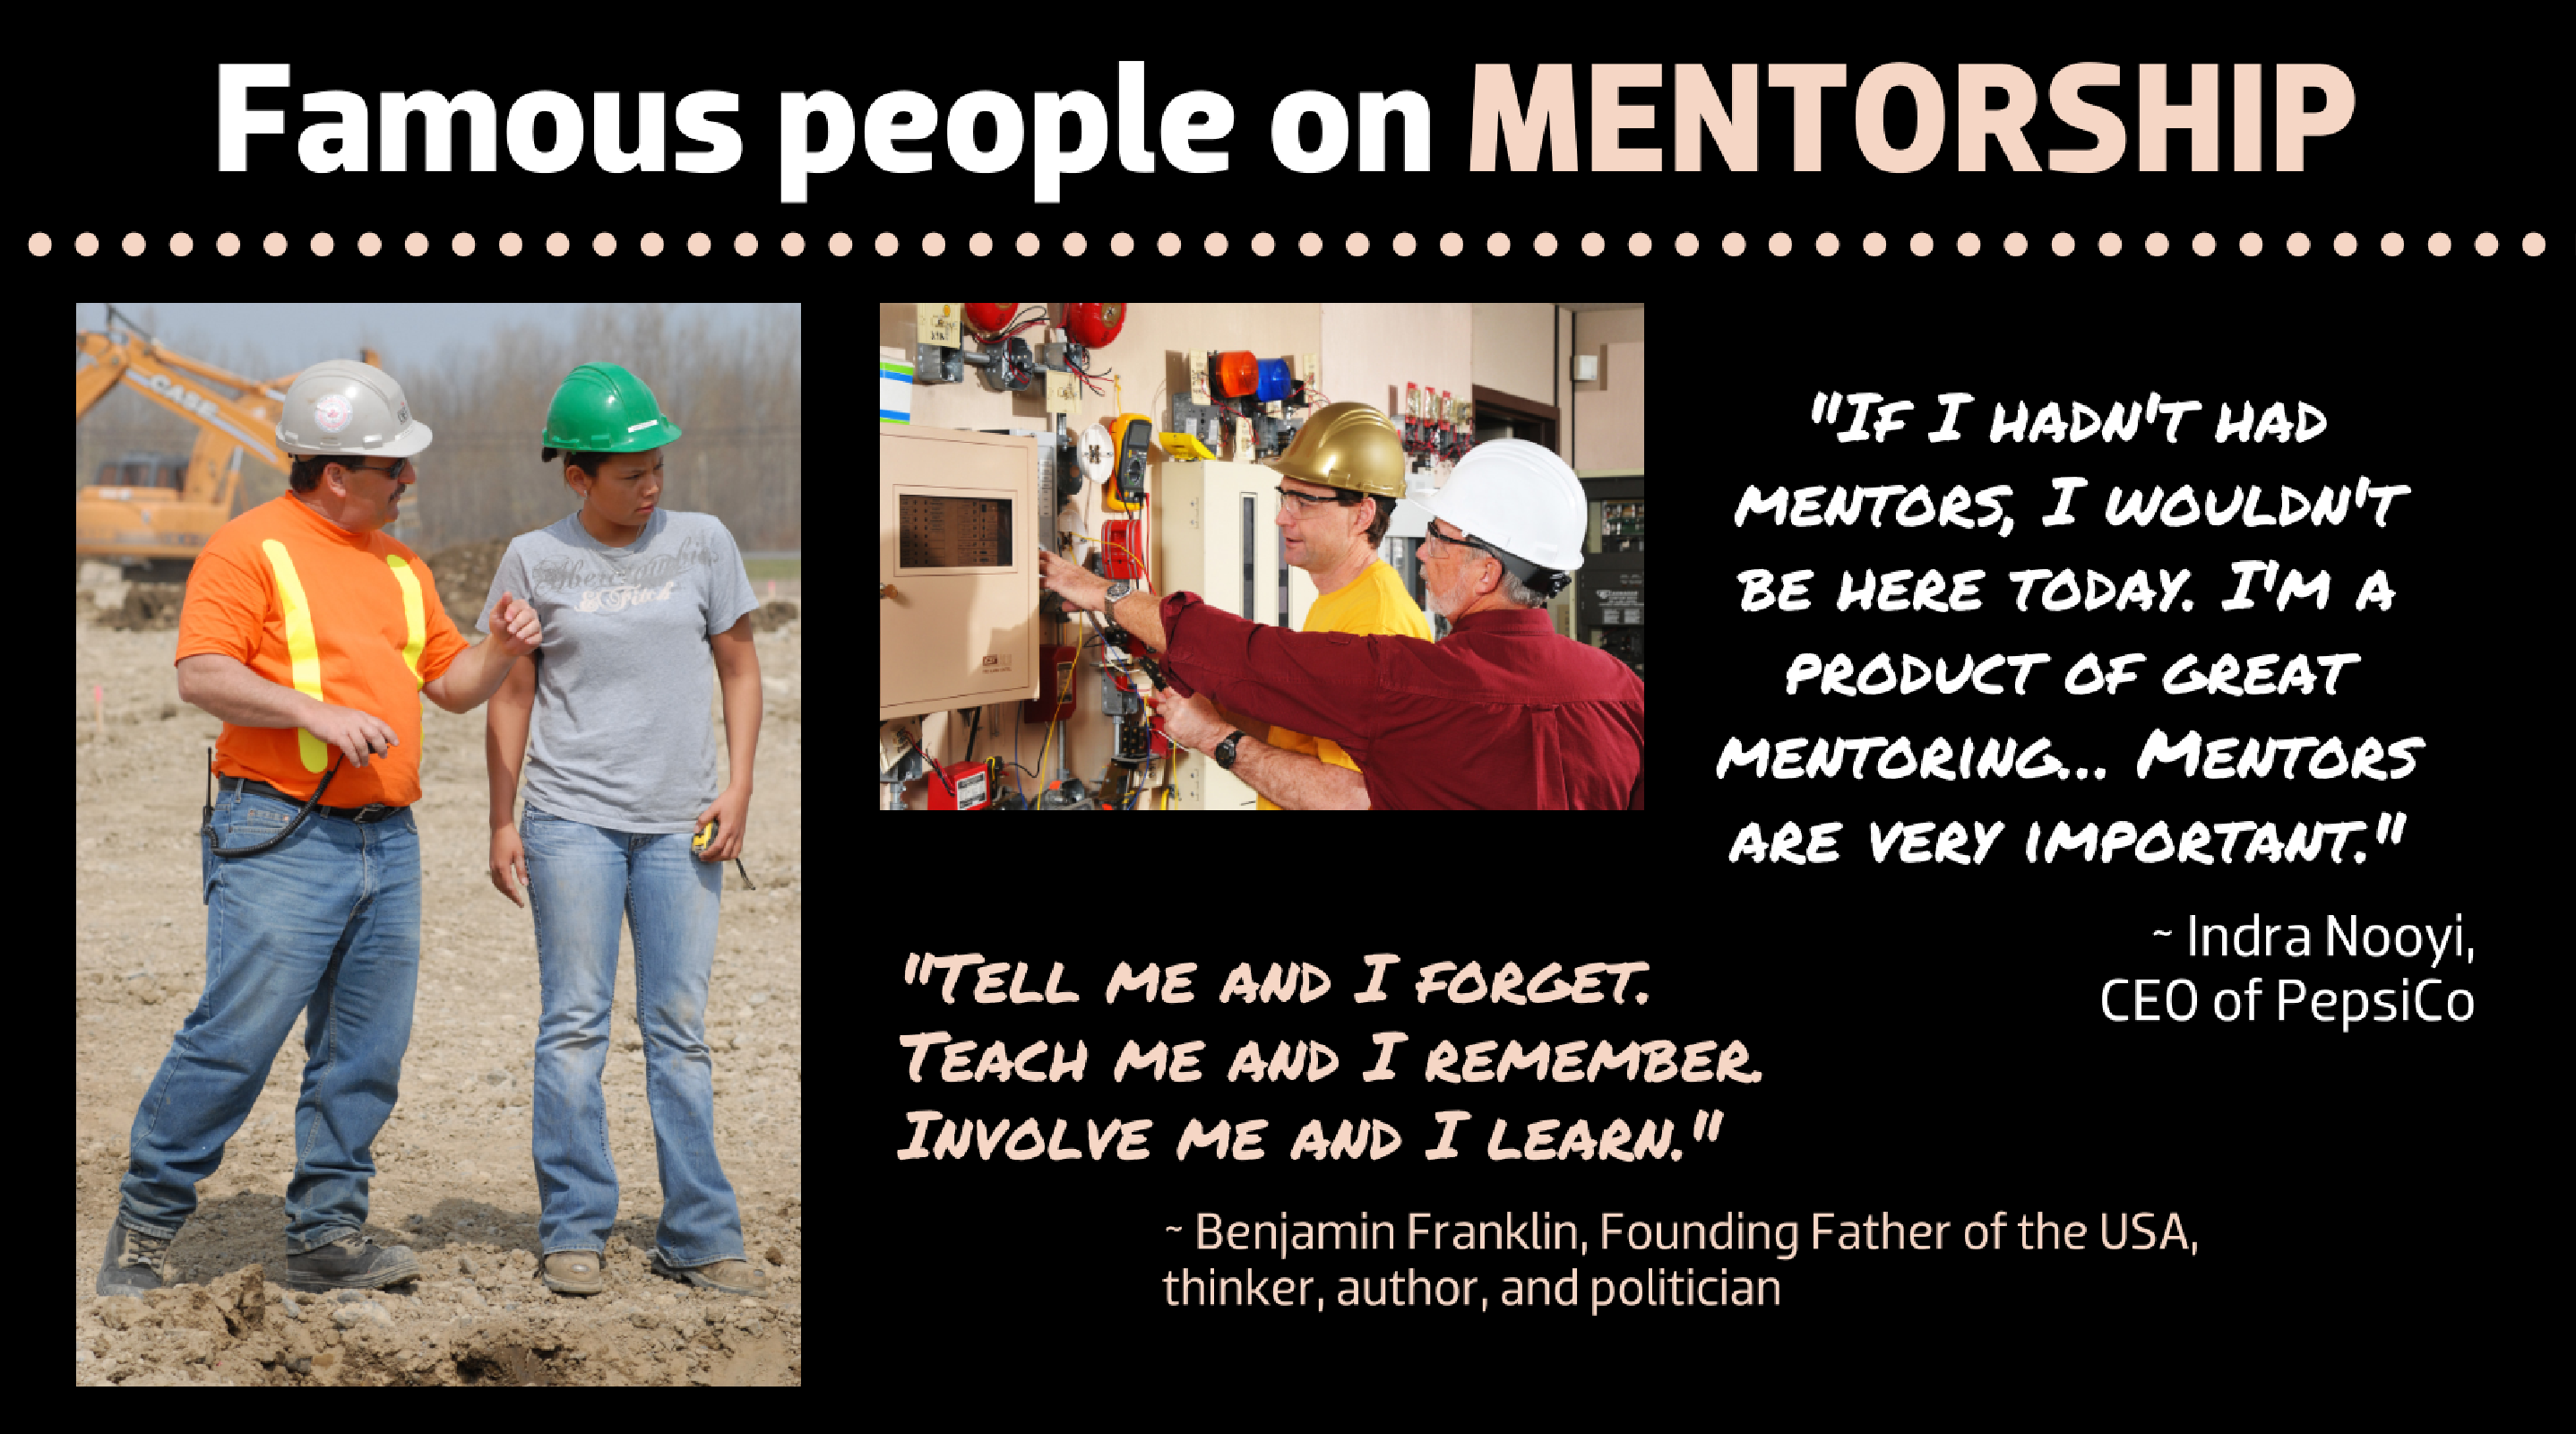 Famous people on mentorship